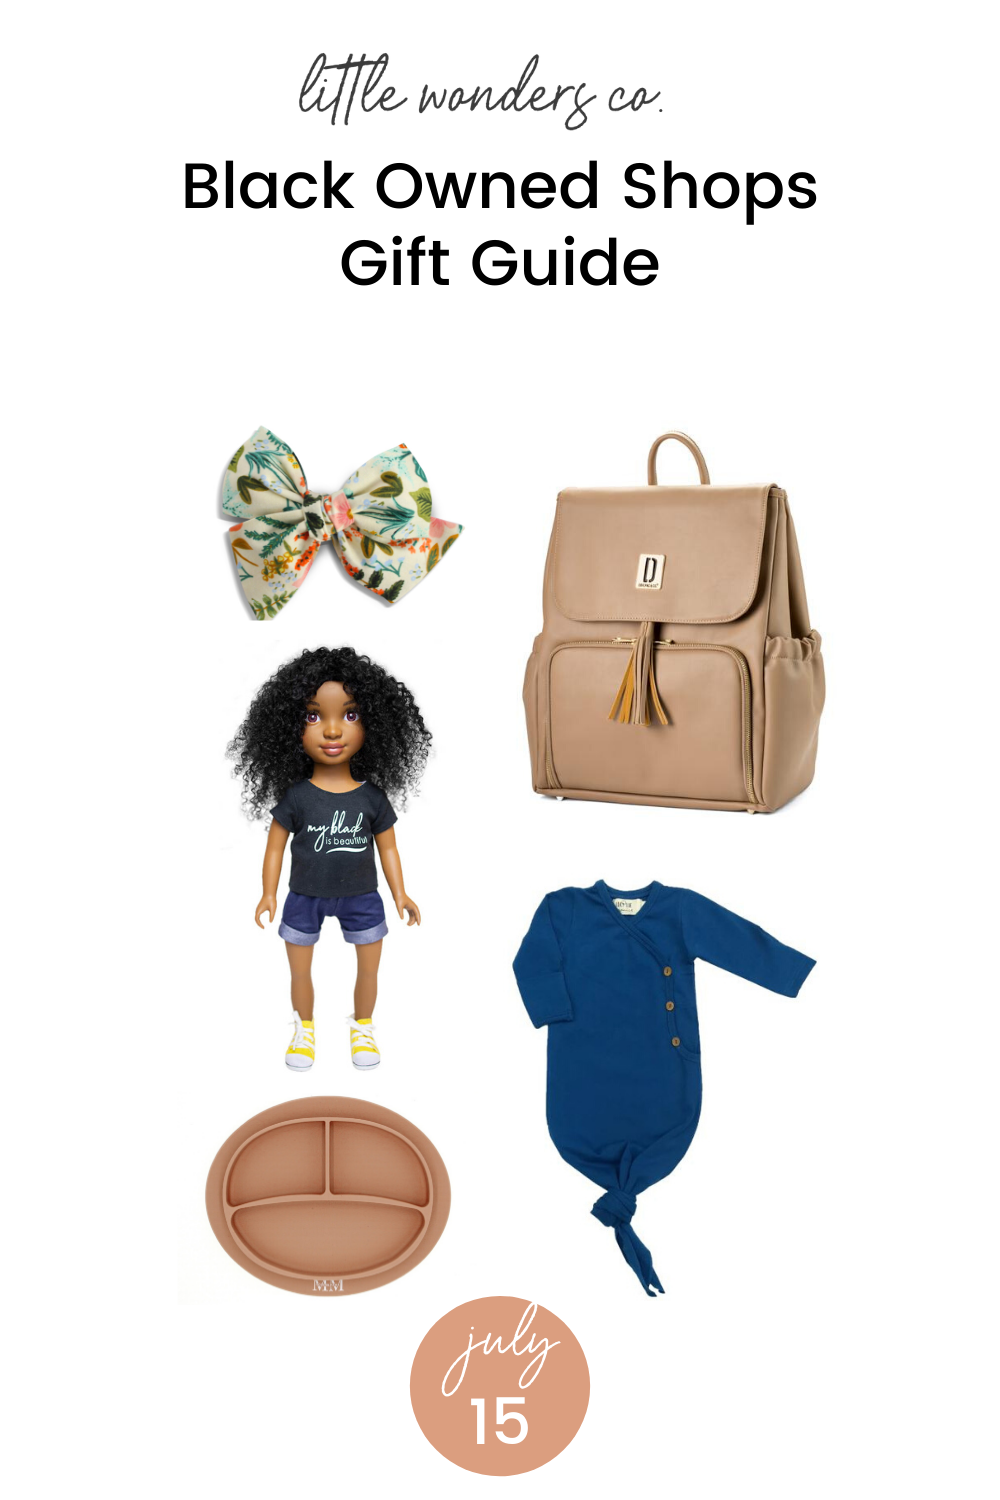 Shop Small | Black-Owned Shops Gift Guide